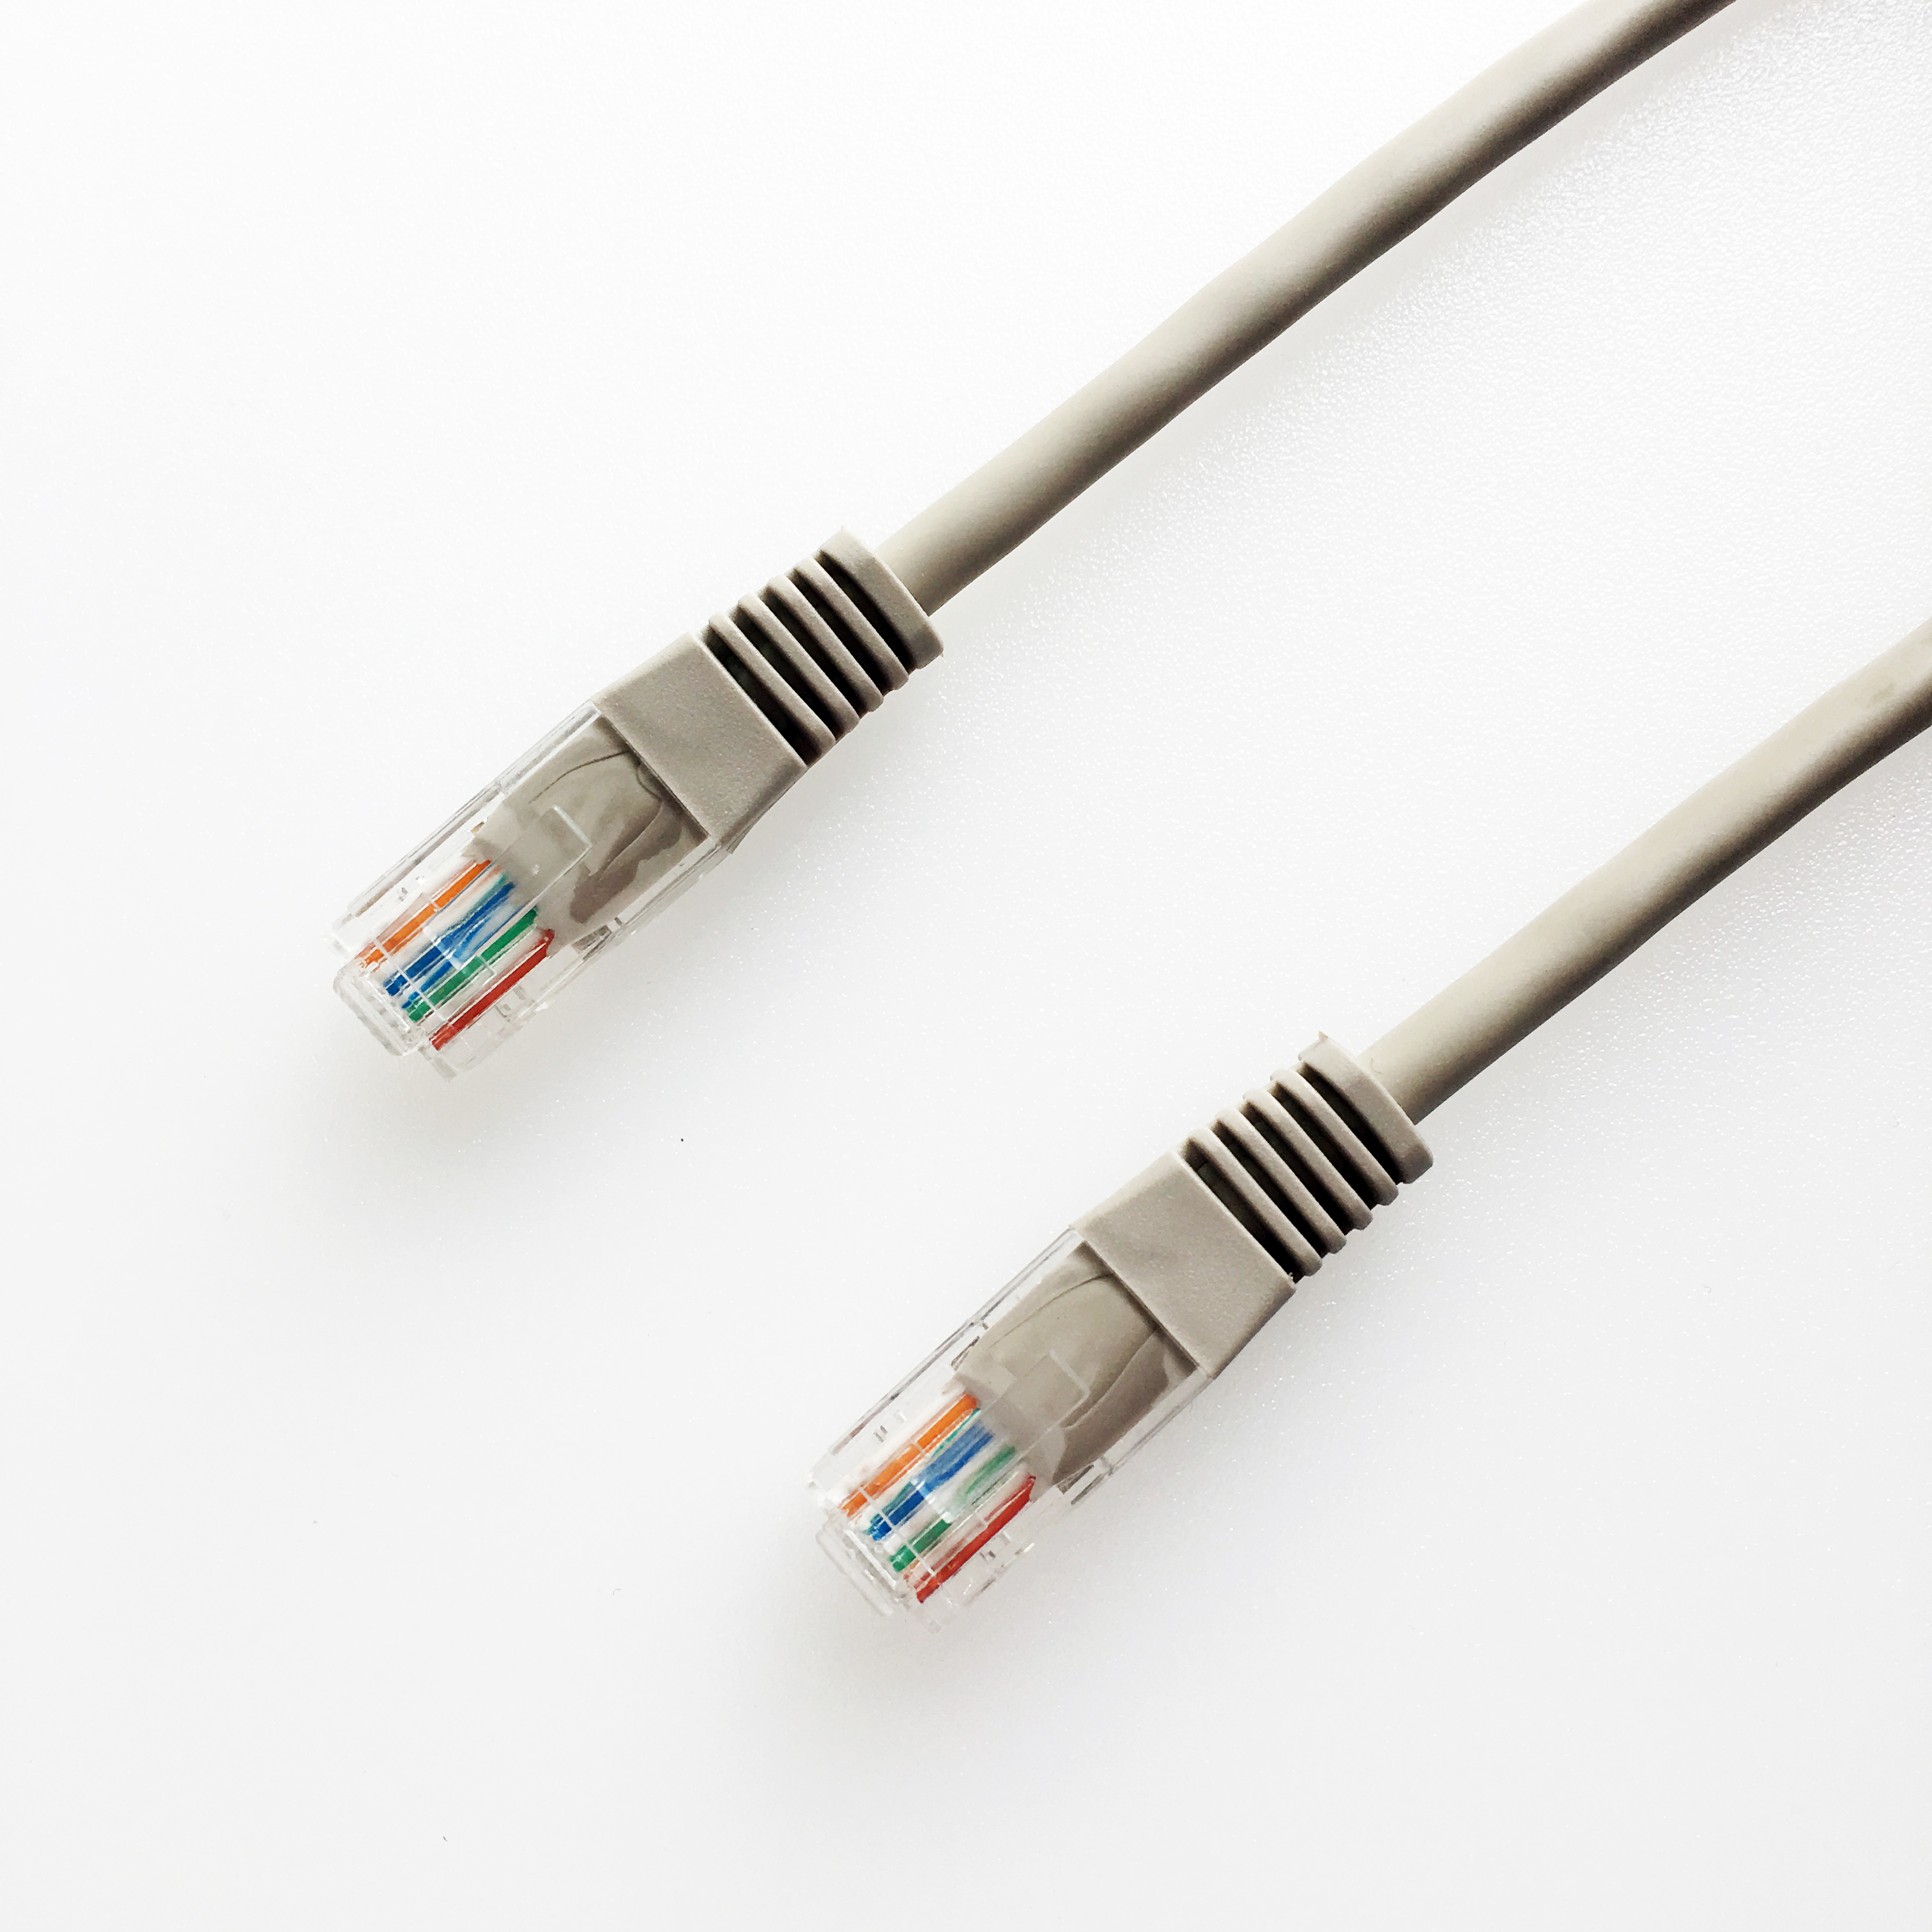 Advanced Cable Technology 1.0/ m CAT5E UTP Patch Cable/  RJ-45, Male//Male, Gold, 10//100//1000Base-T , Cat5e x / RJ-45/ Network Cable